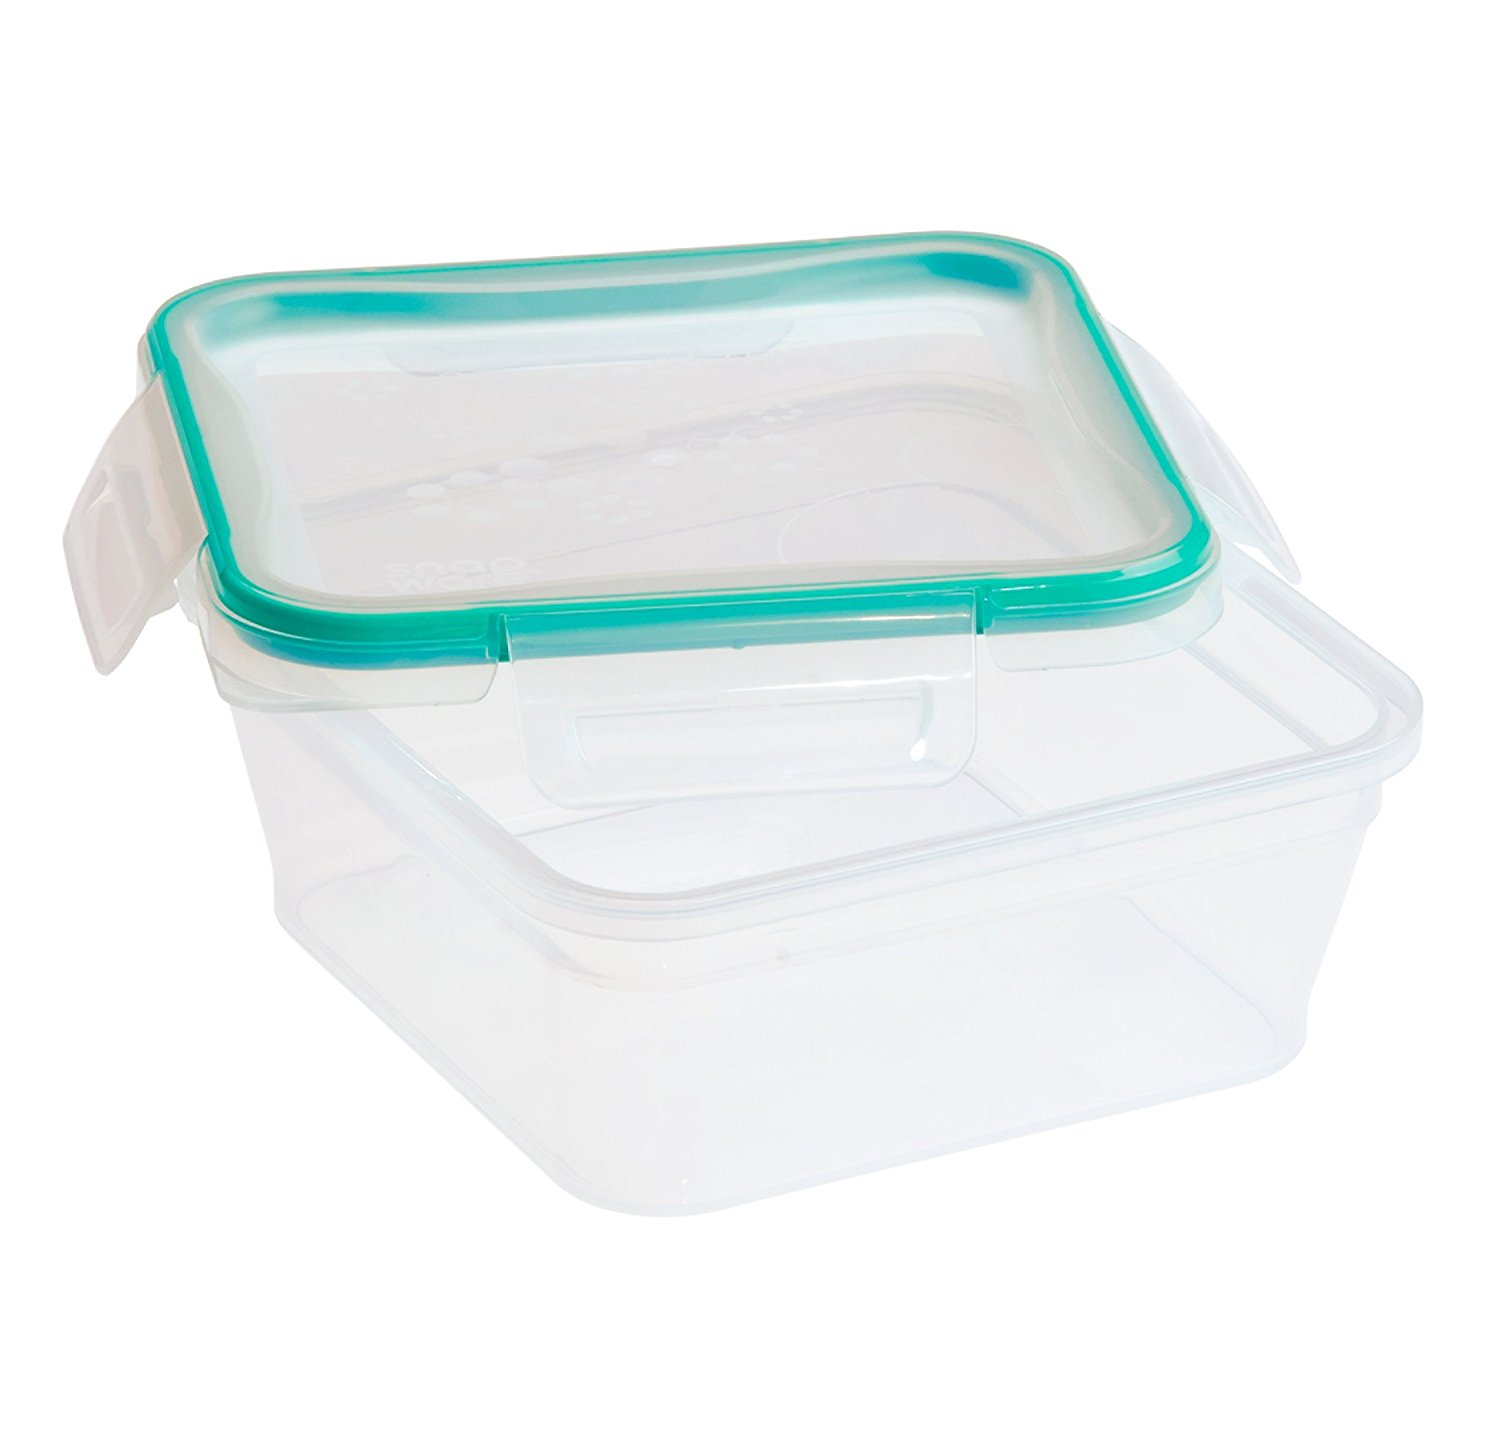 Snapware 535 Cup Total Solution Square Food Storage Container